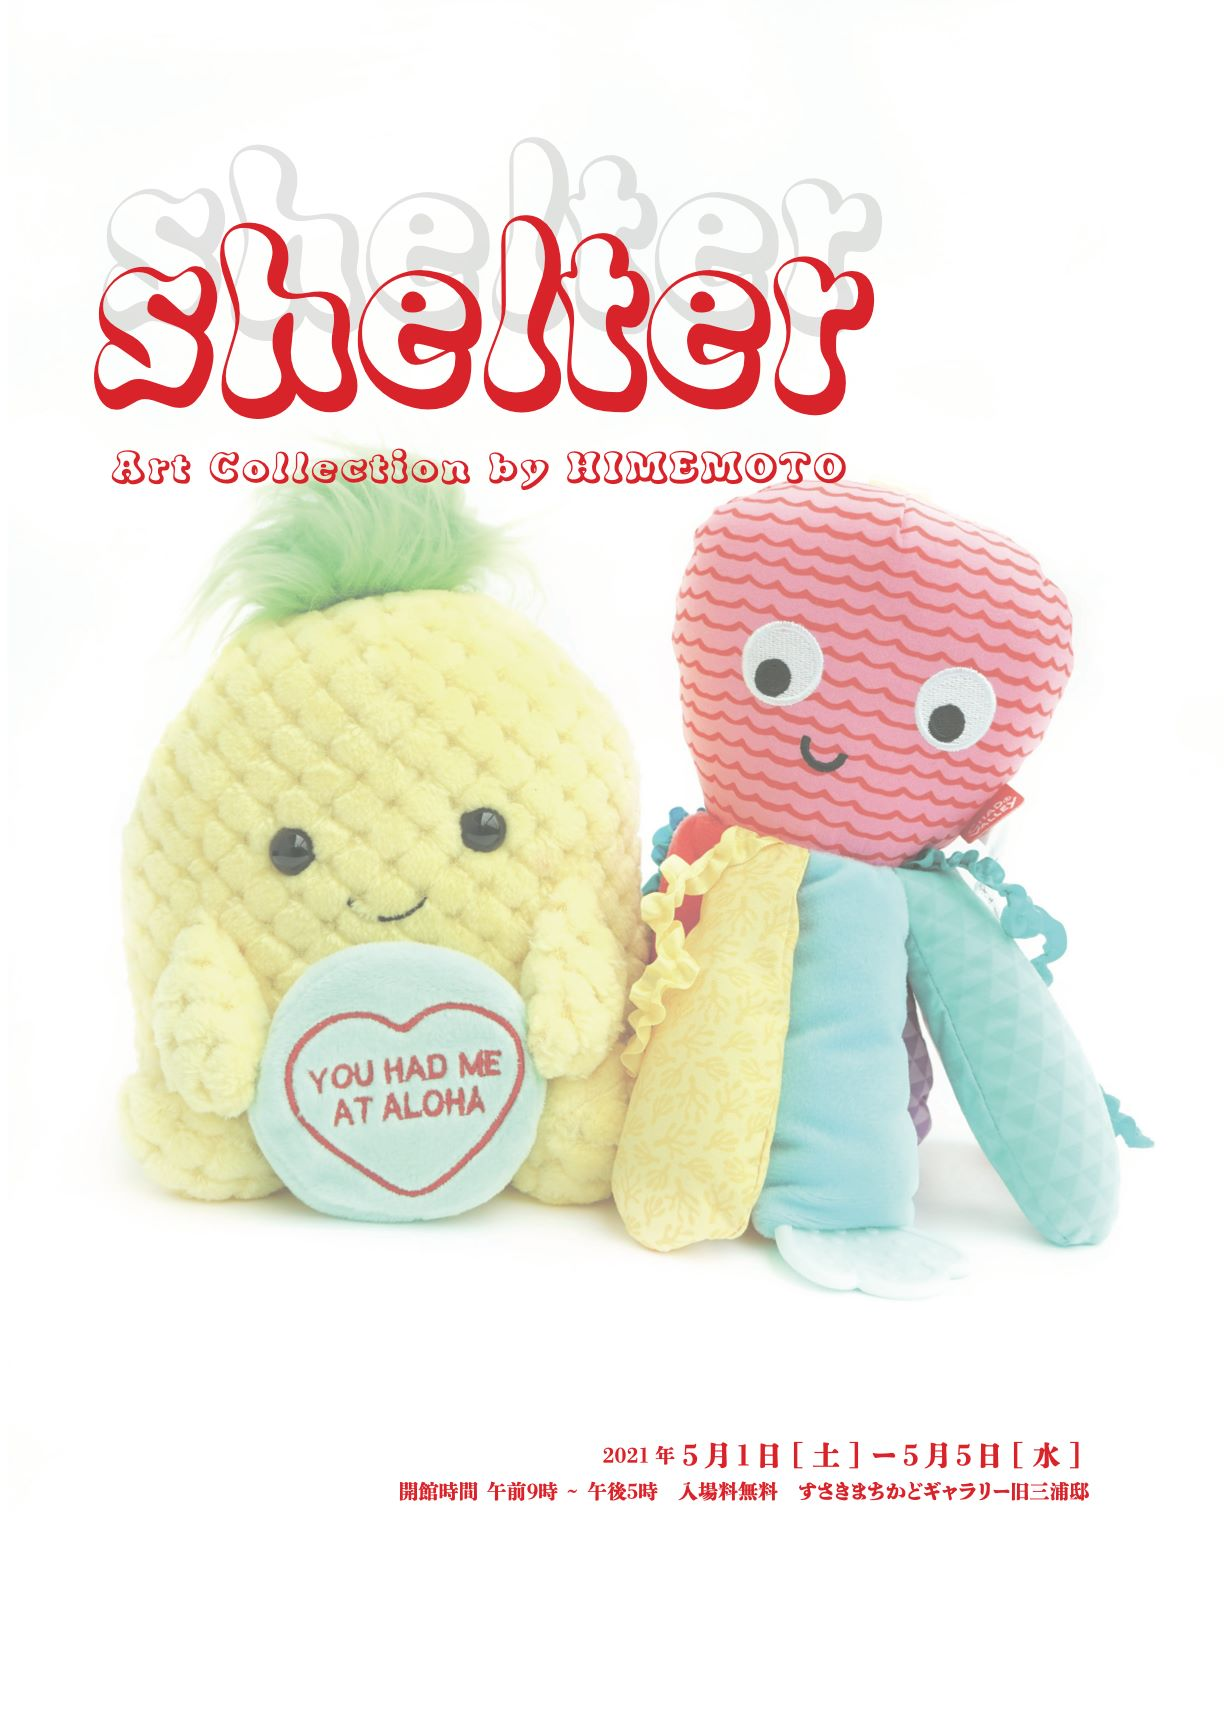 shelter-%e3%80%80%ef%bd%9eart-collection-himemoto%ef%bd%9e